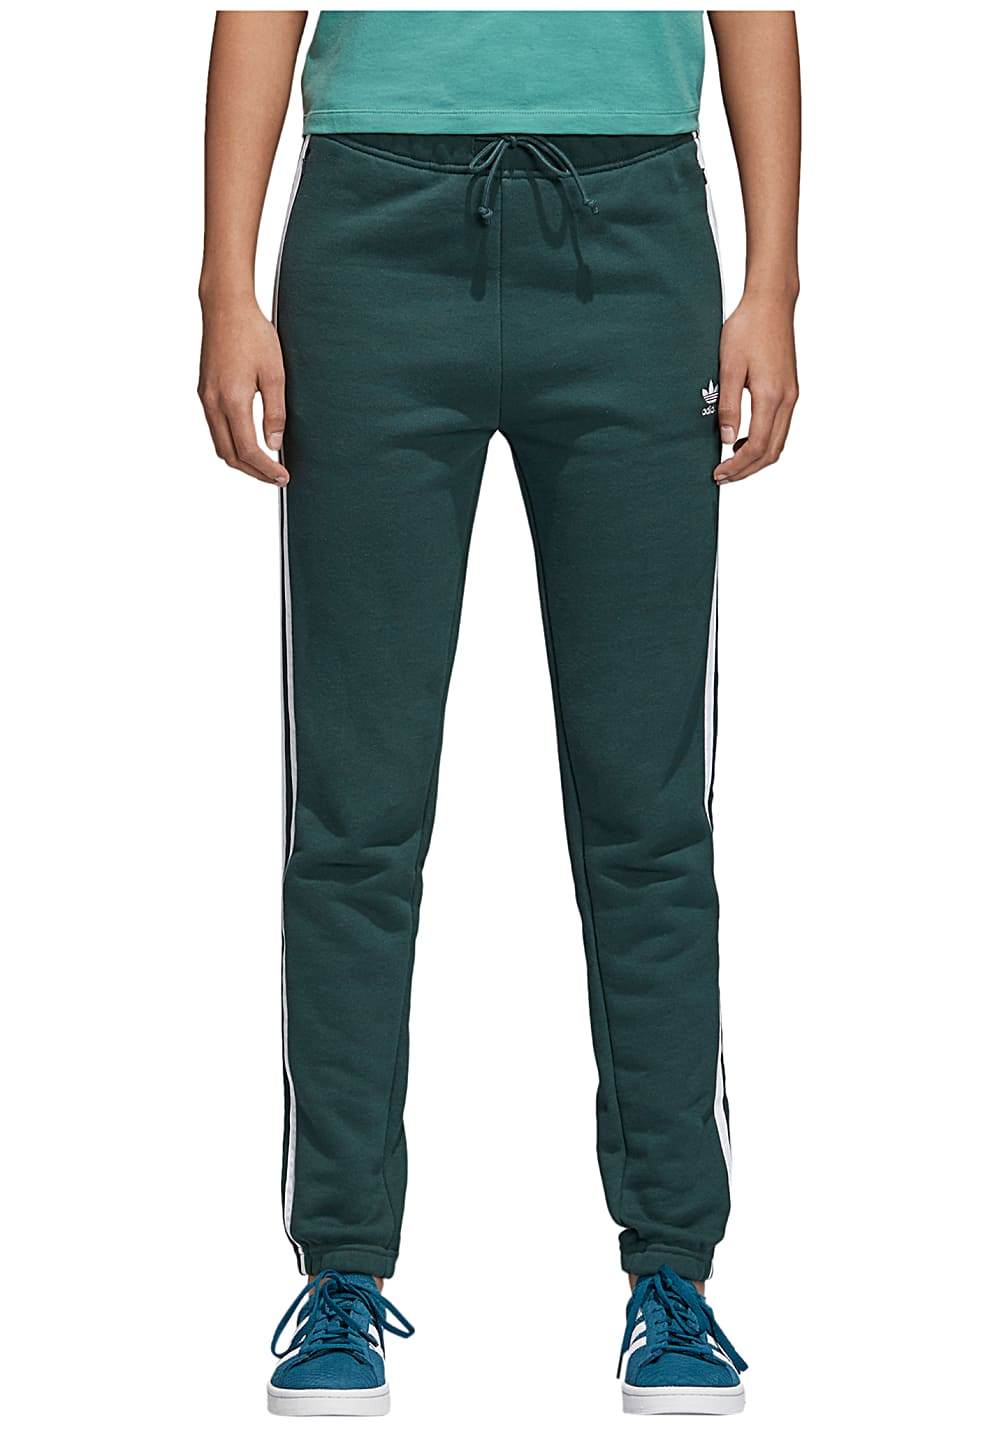 fc79eec18a7f Next. -10%. This product is currently out of stock. ADIDAS ORIGINALS. Regular  Cuffed - Trackpants for Women